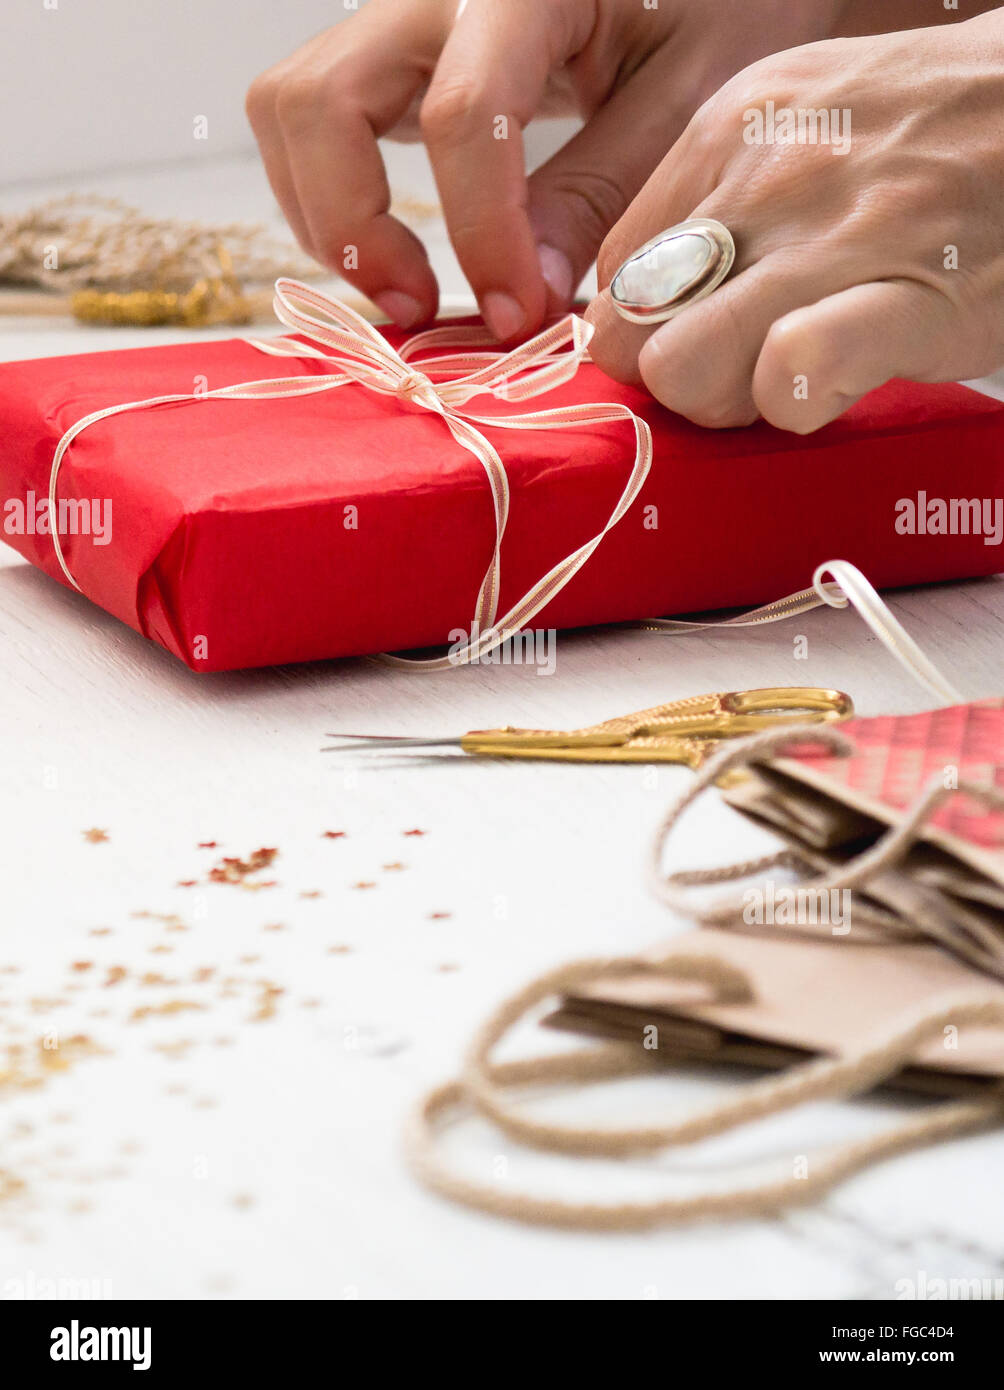 Cropped Image Of Hand Tying Ribbon On Gift At Table - Stock Image